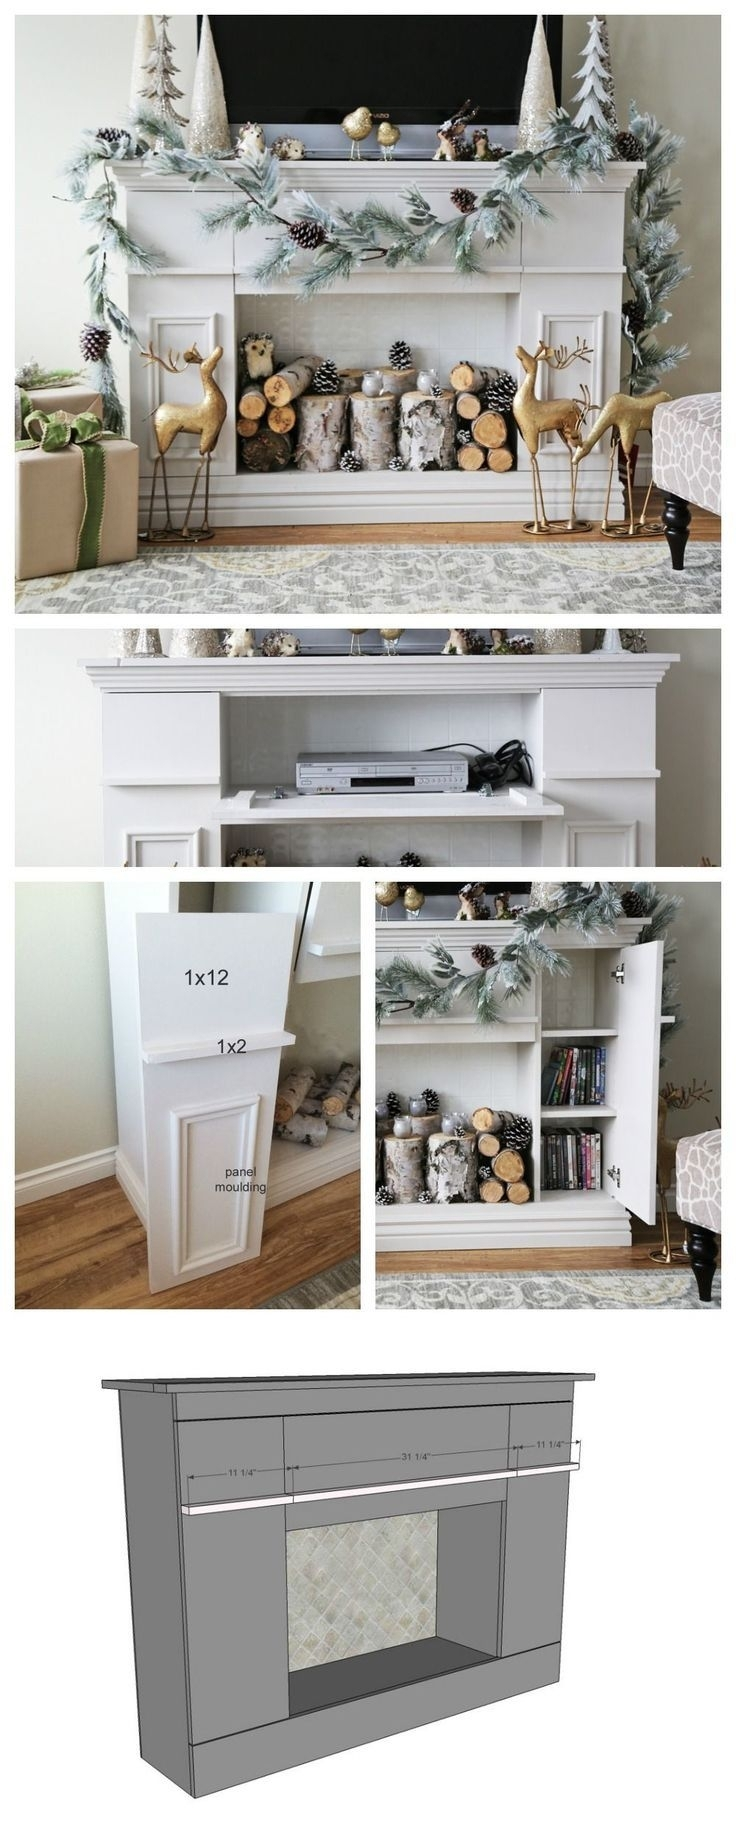 9 Best Fireplace Images On Pinterest | Fire Places, Living Room And inside Marbled Axton Sideboards (Image 6 of 26)